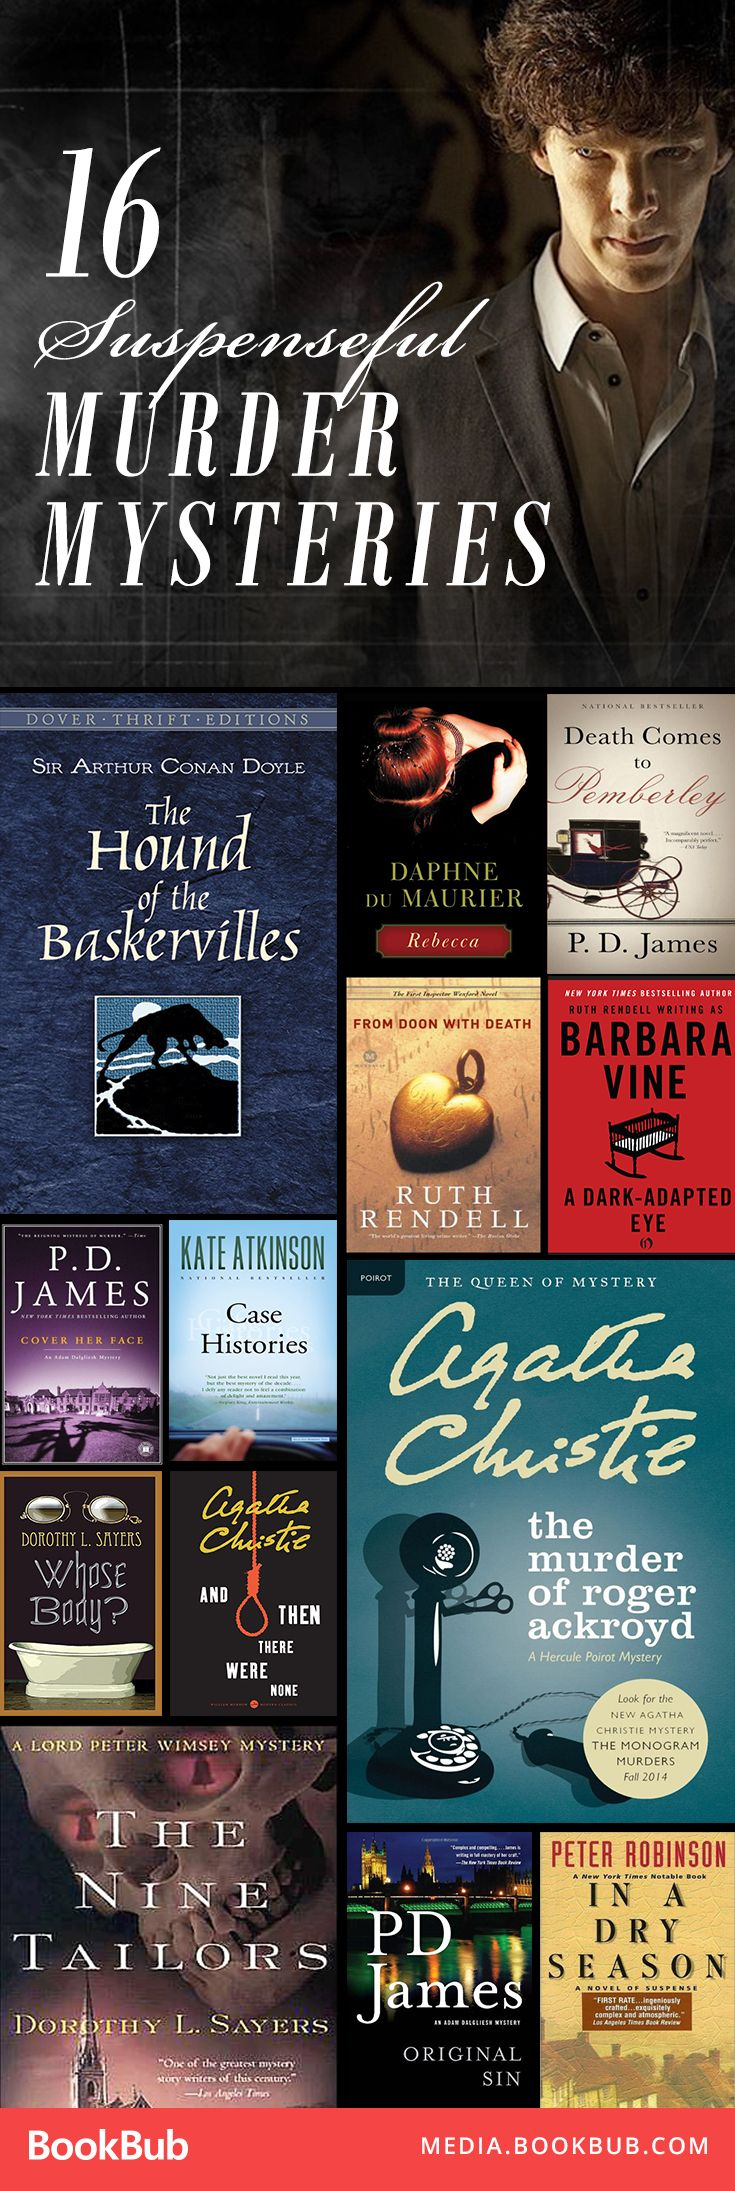 These murder mystery books are full of suspense and adventure.